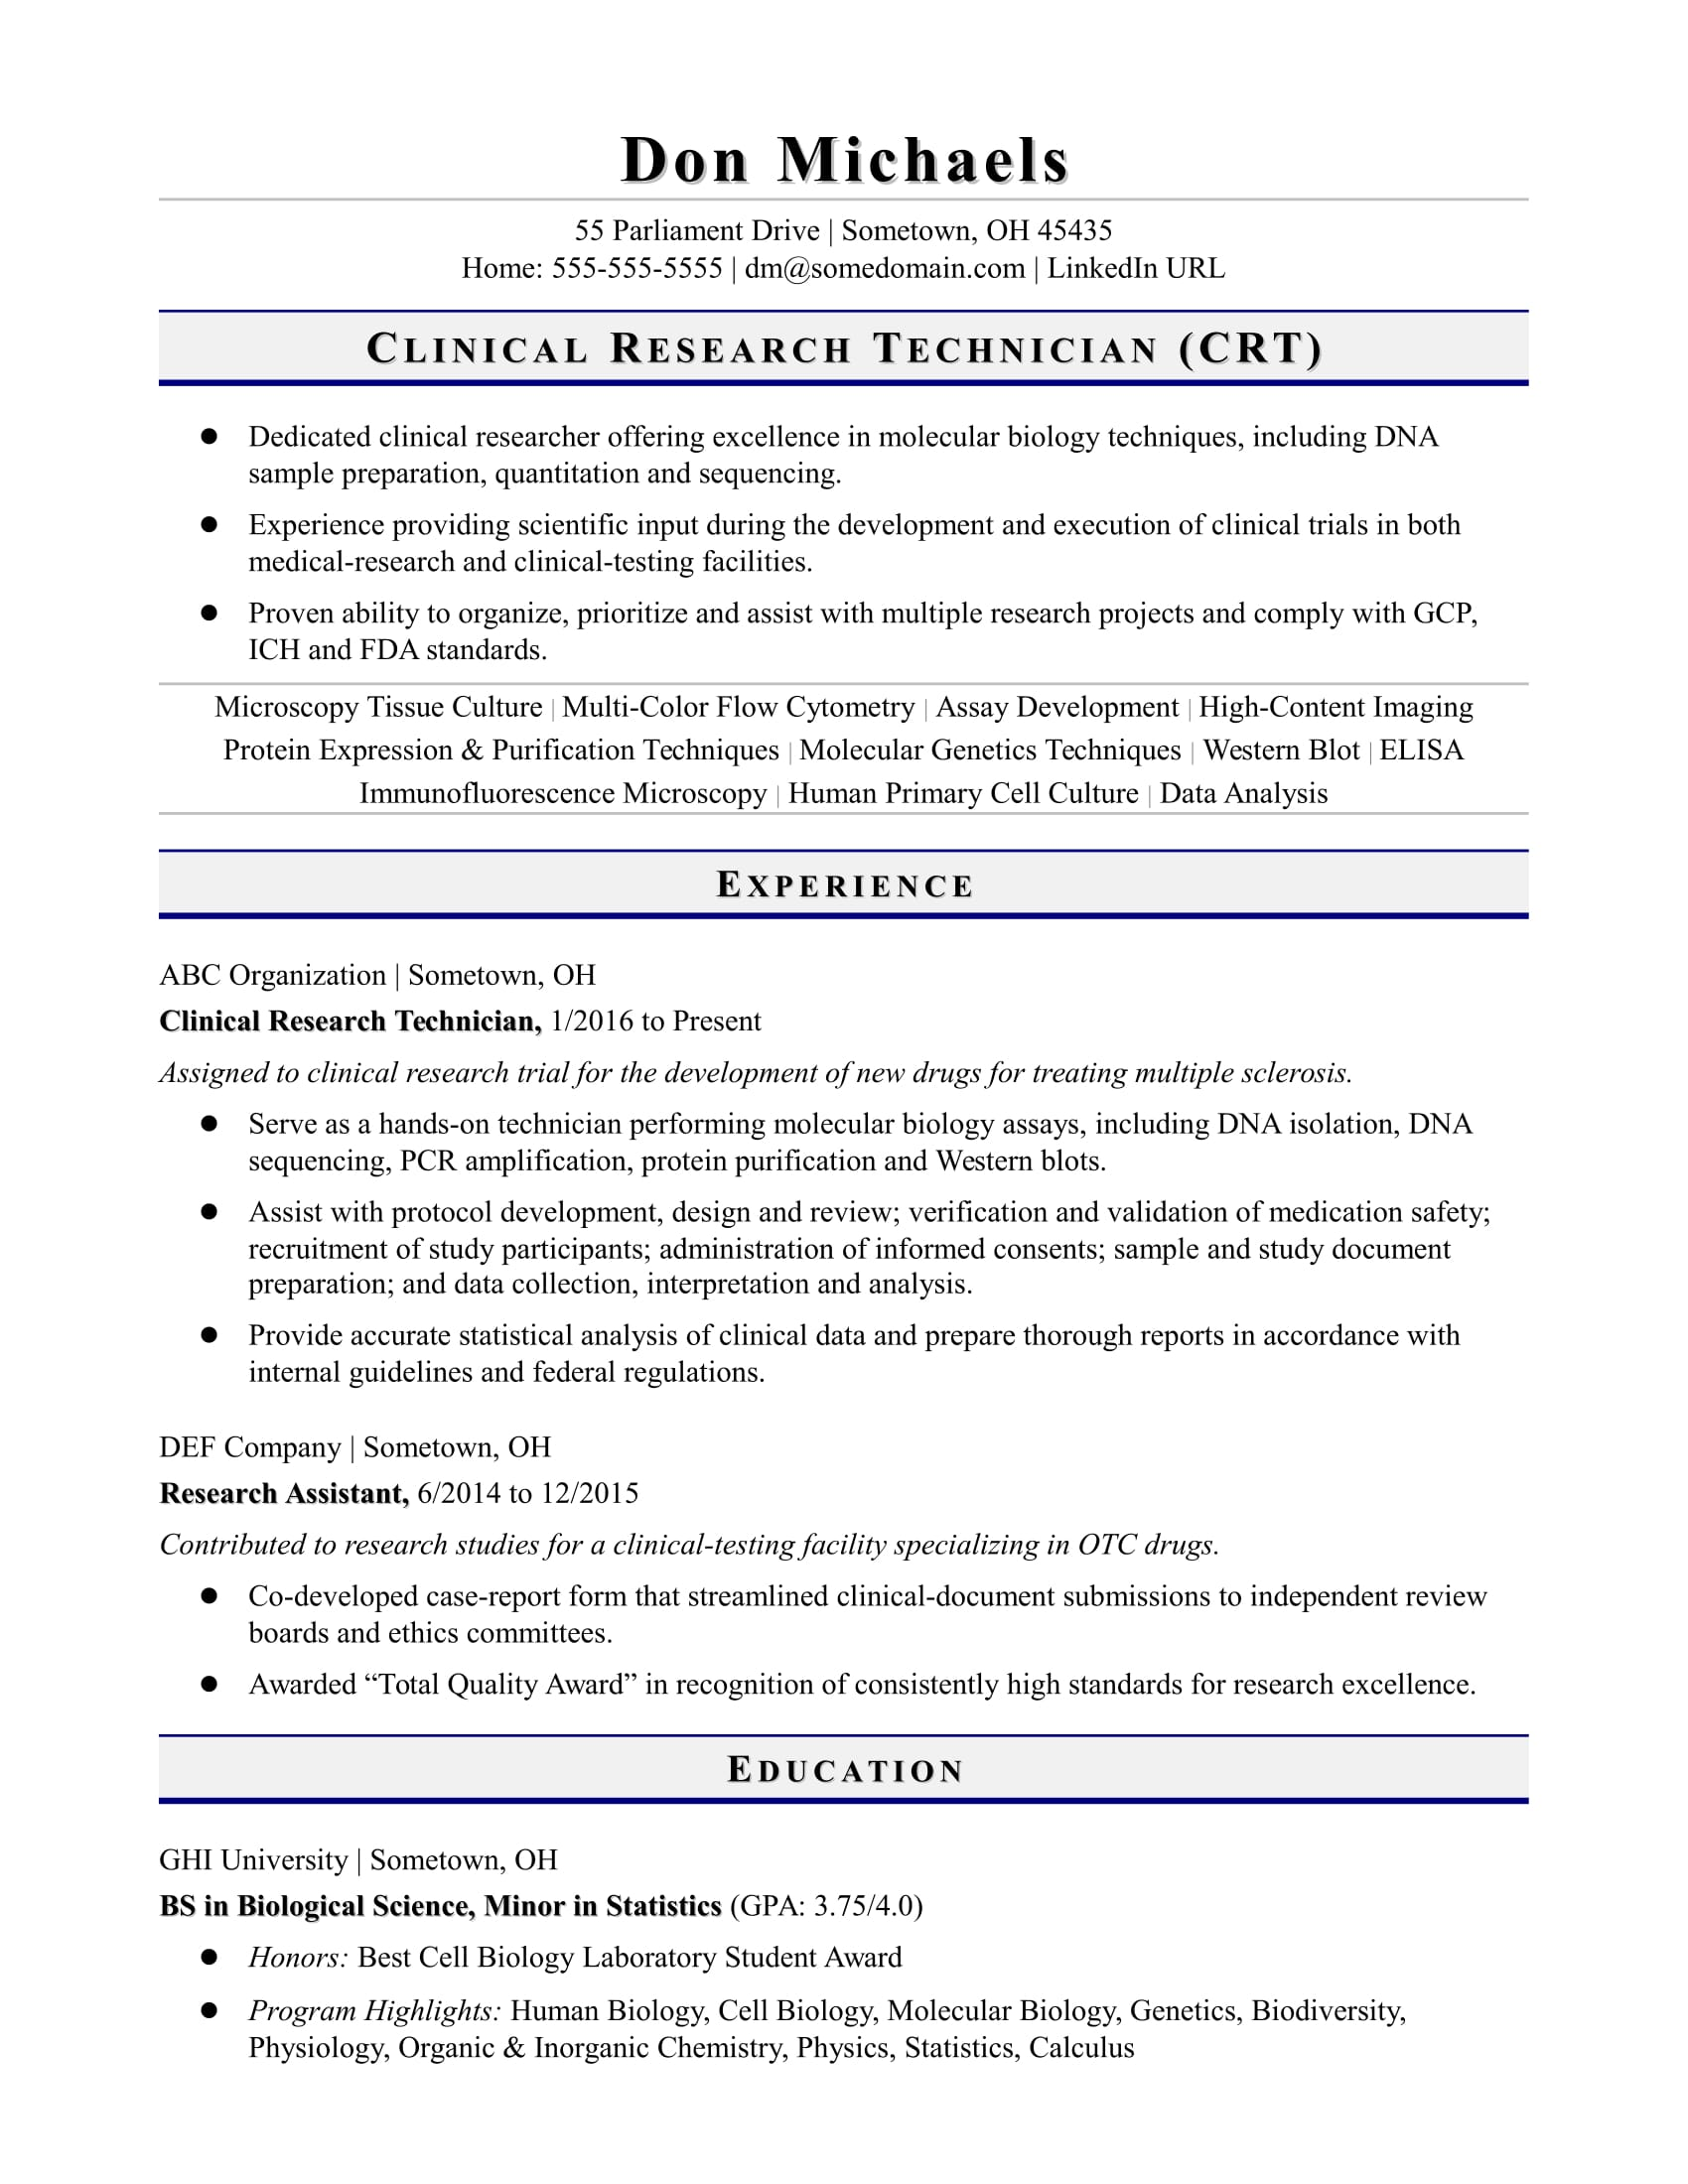 research biologist resume example